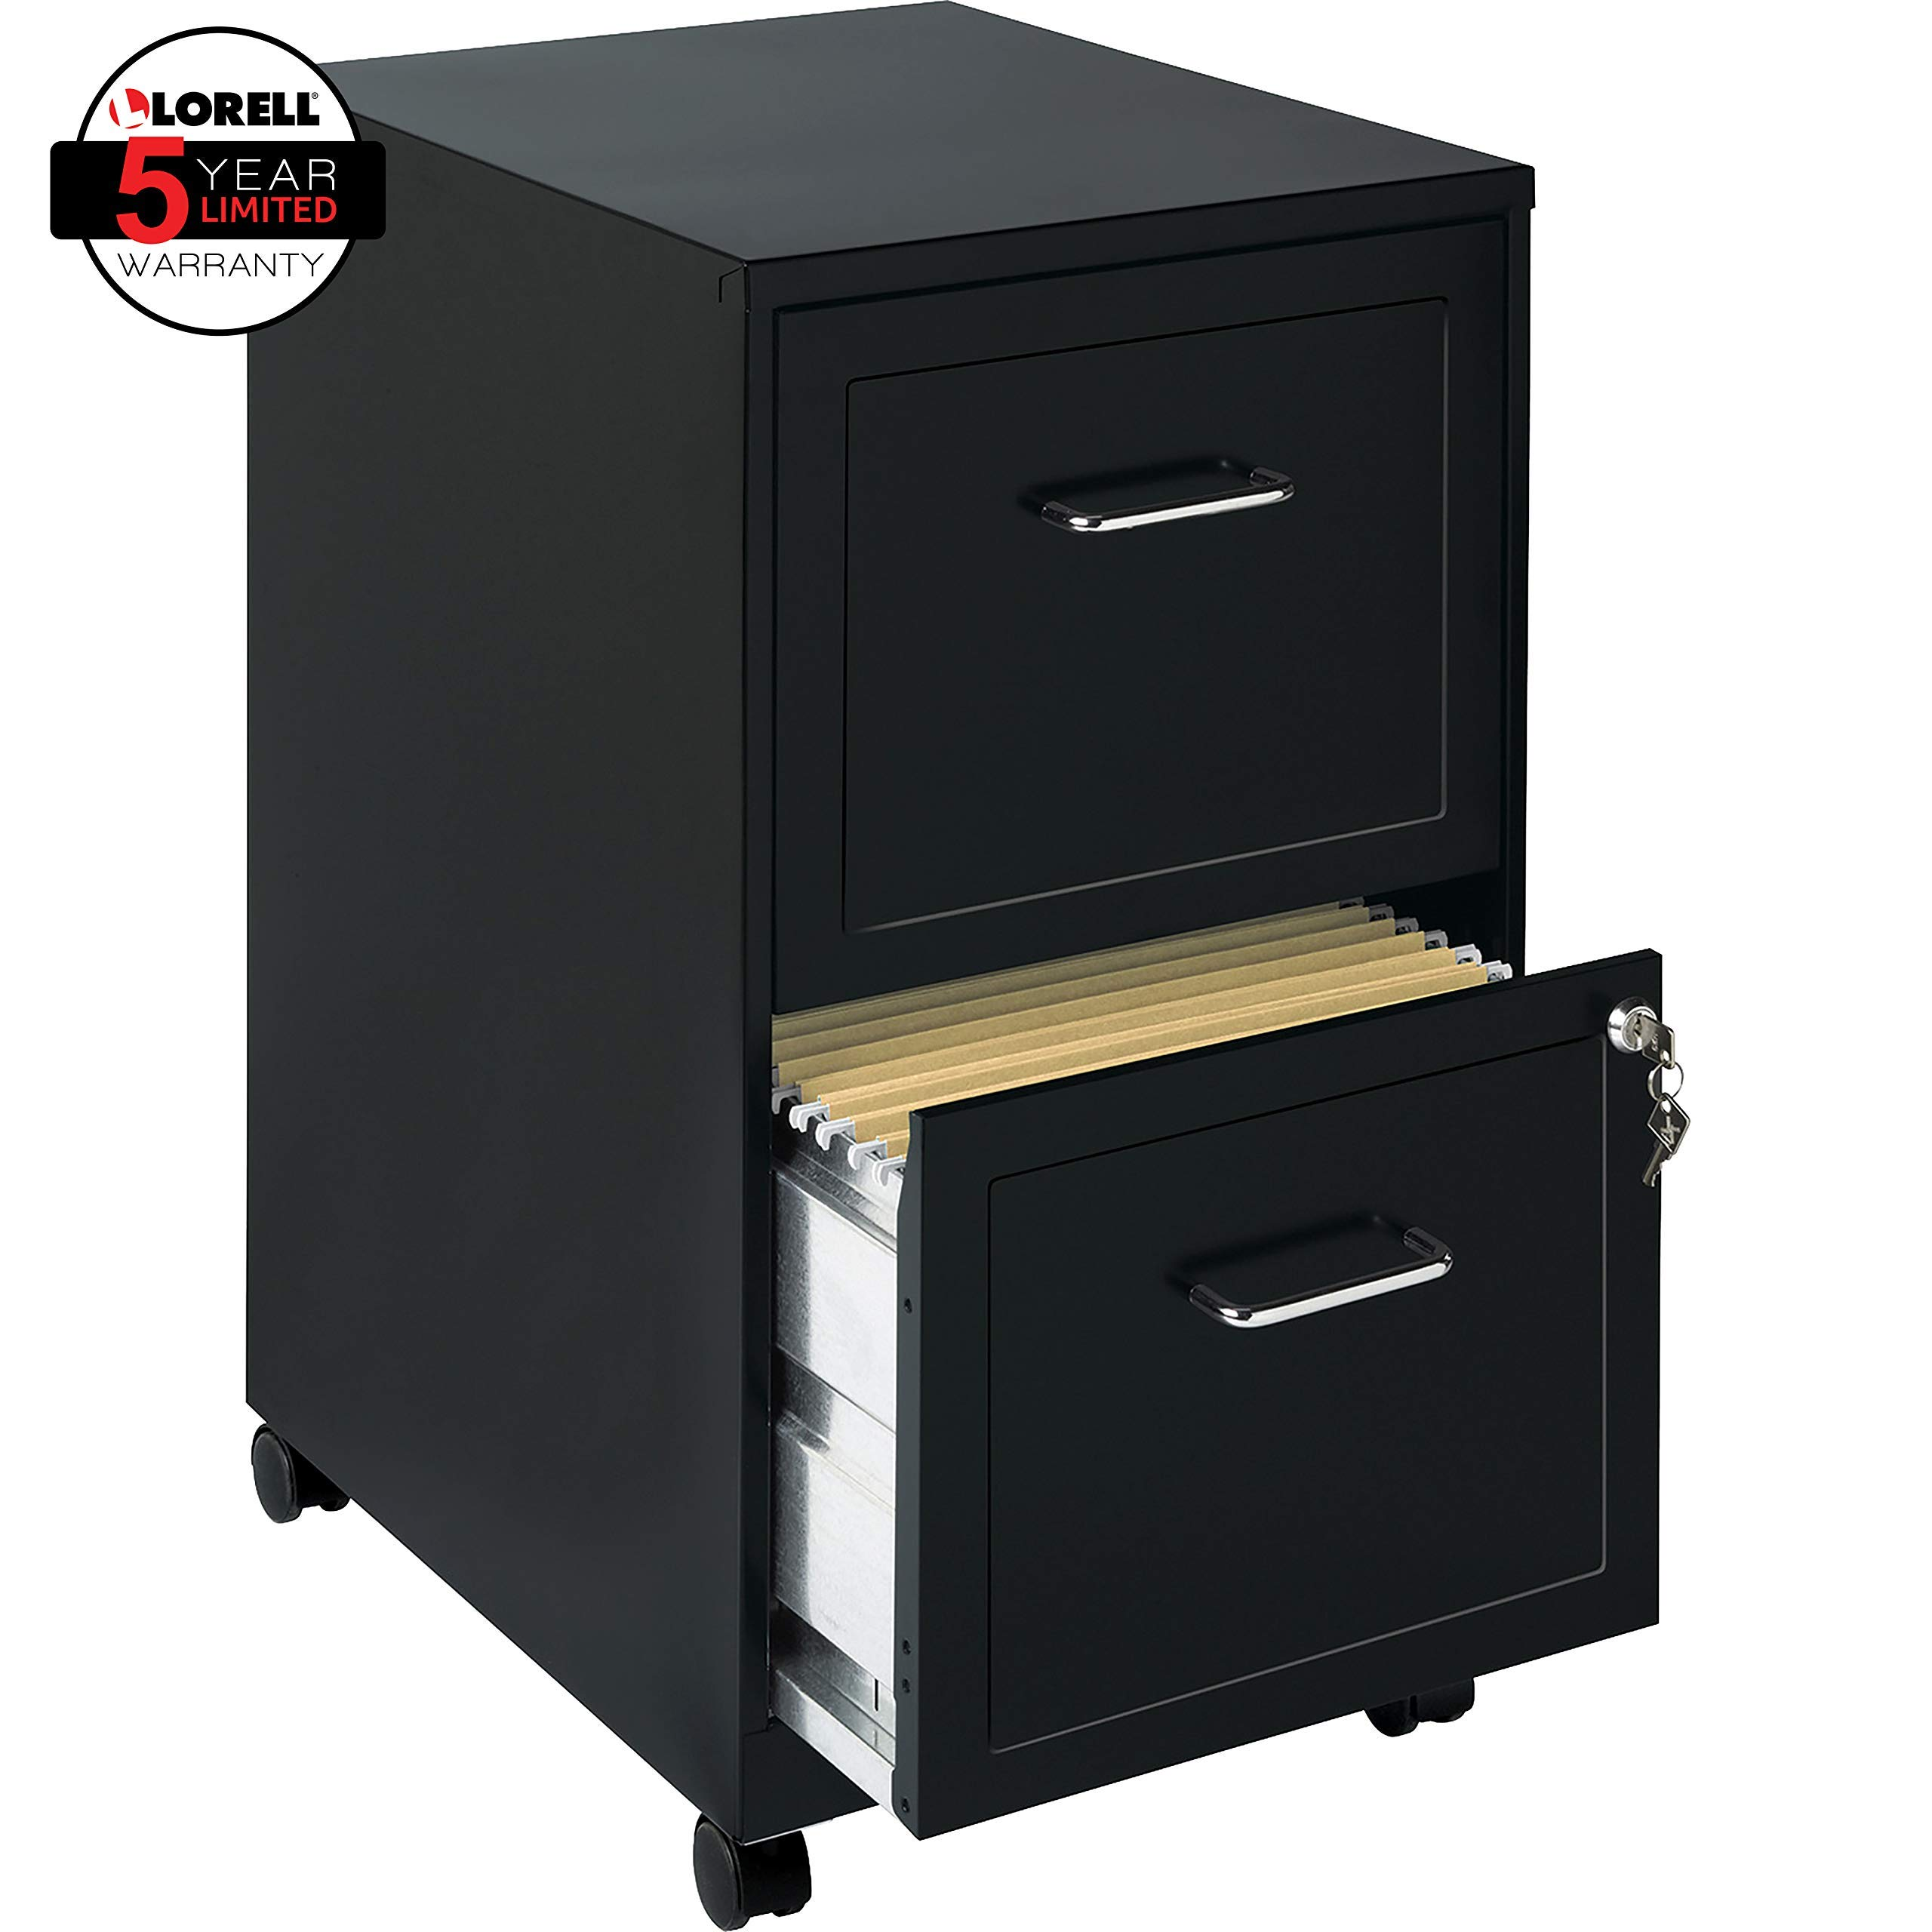 Lorell SOHO Chrome Pull F/F Mobile File Cabinet by Lorell